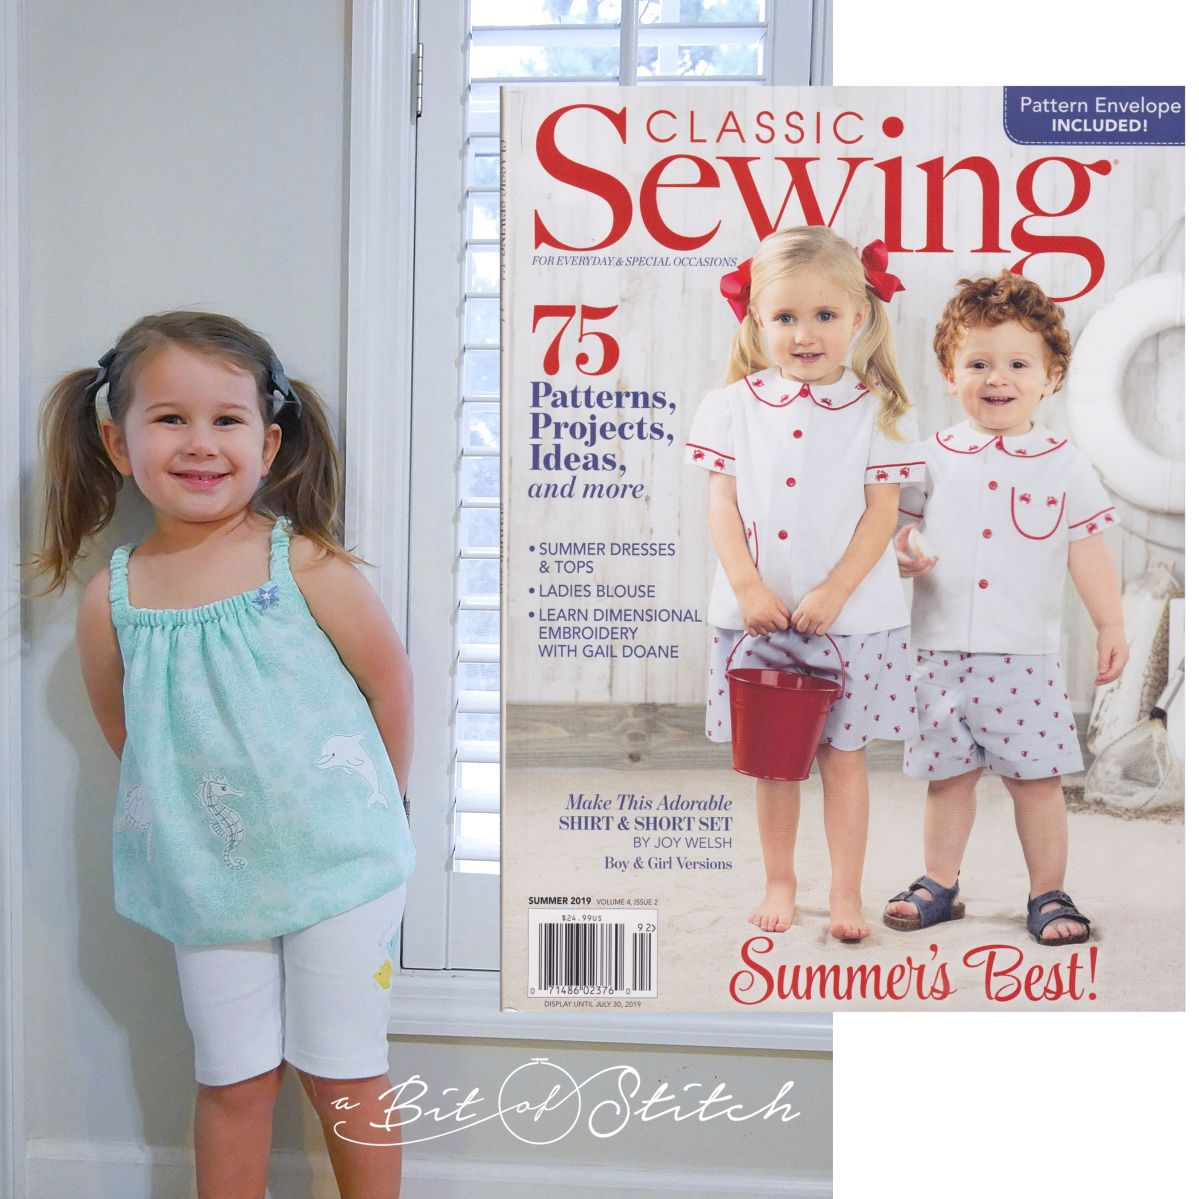 Classic Sewing Summer Issue 2019